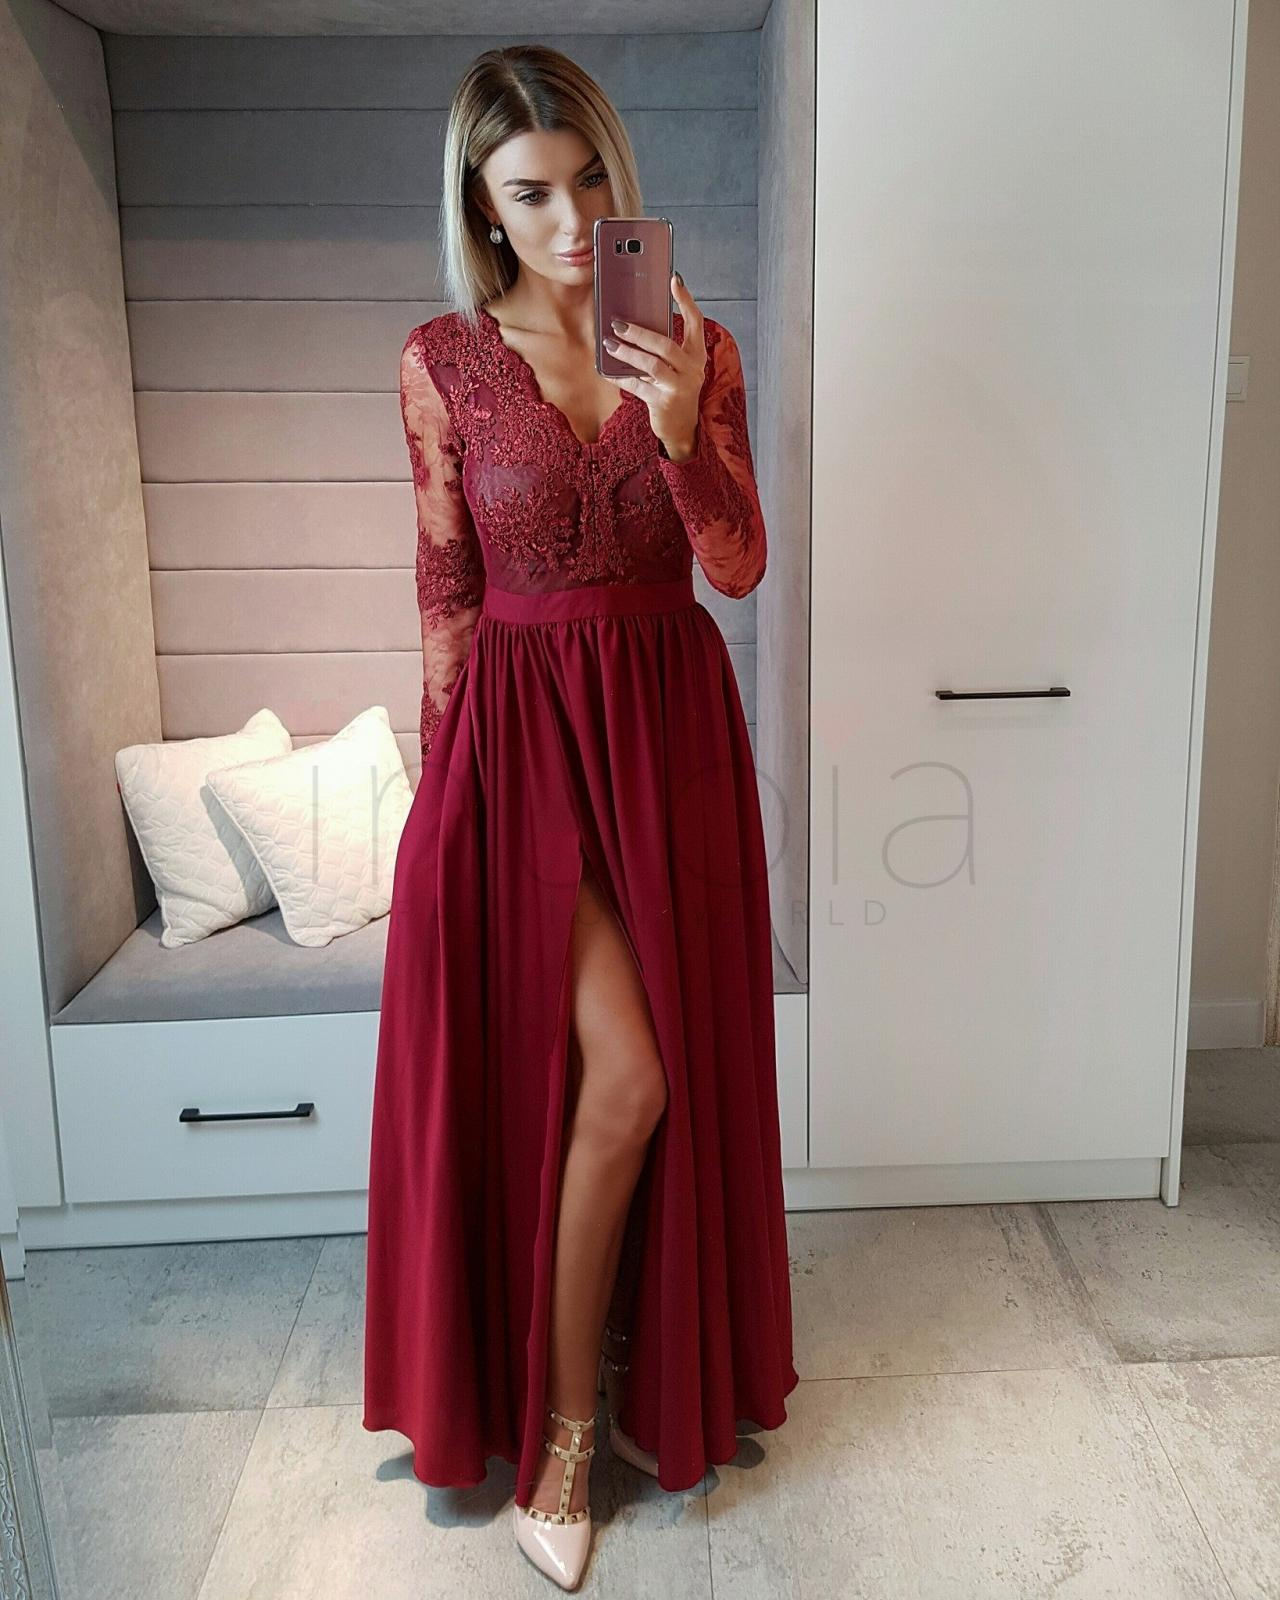 0d1b744a00182 Red Wine Colored Prom Dresses